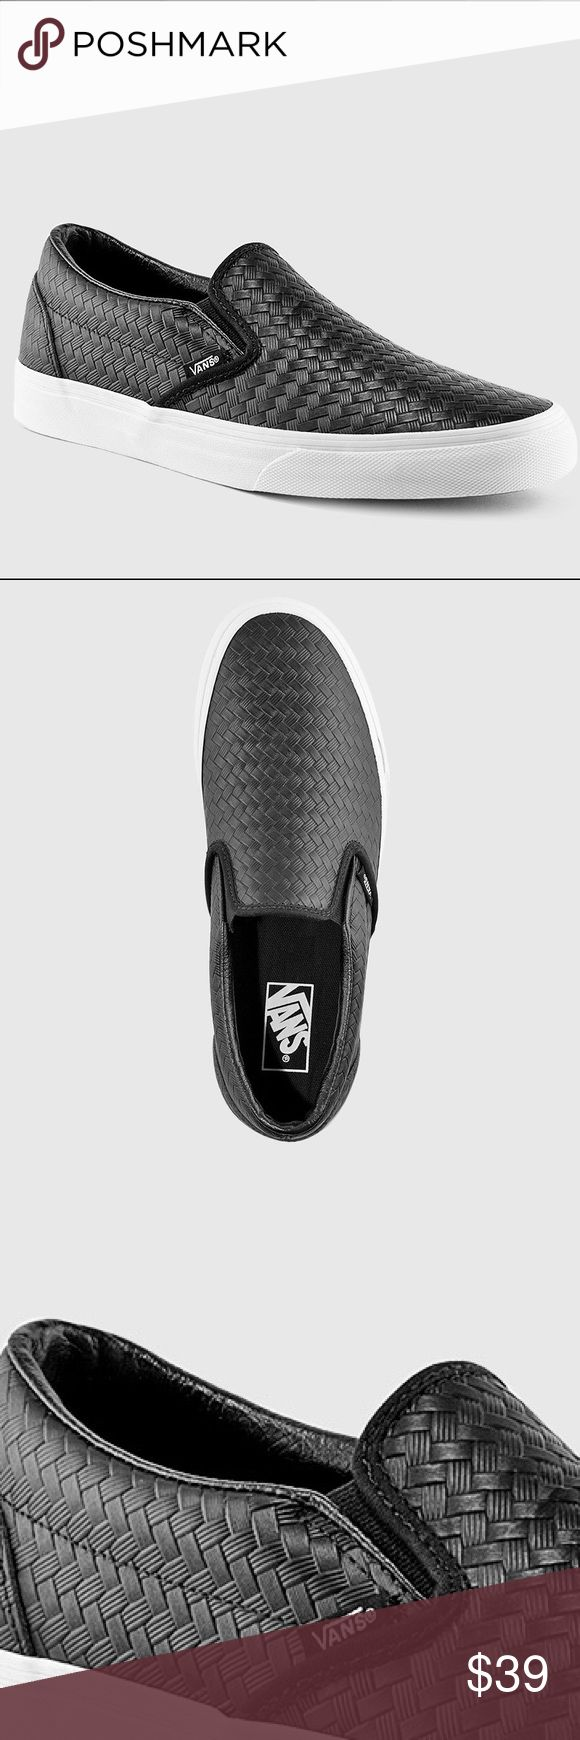 Vans Woven and Embossed Black Leather Slip Ons' The Classic Slip-On has a low profile, slip-on canvas upper with all-over checker print, elastic side accents, Vans flag label and Vans original Waffle Outsole. - Vans Shoes Sneakers